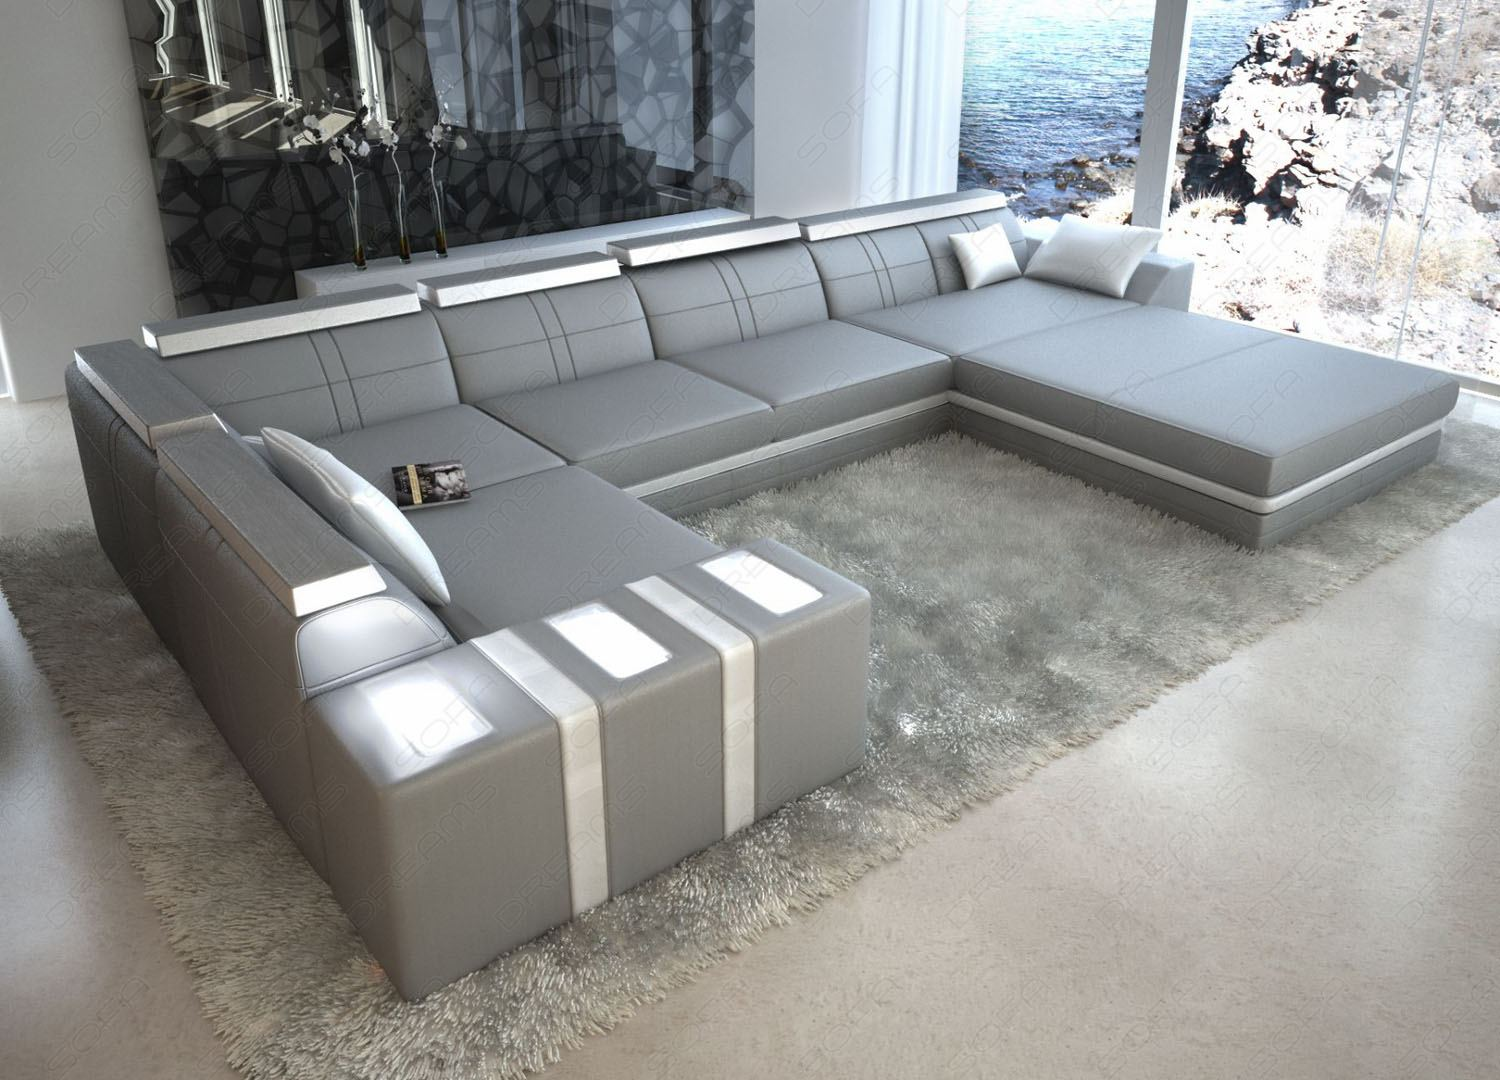 leather sofa asti u shaped grey white interior design lighting. Black Bedroom Furniture Sets. Home Design Ideas